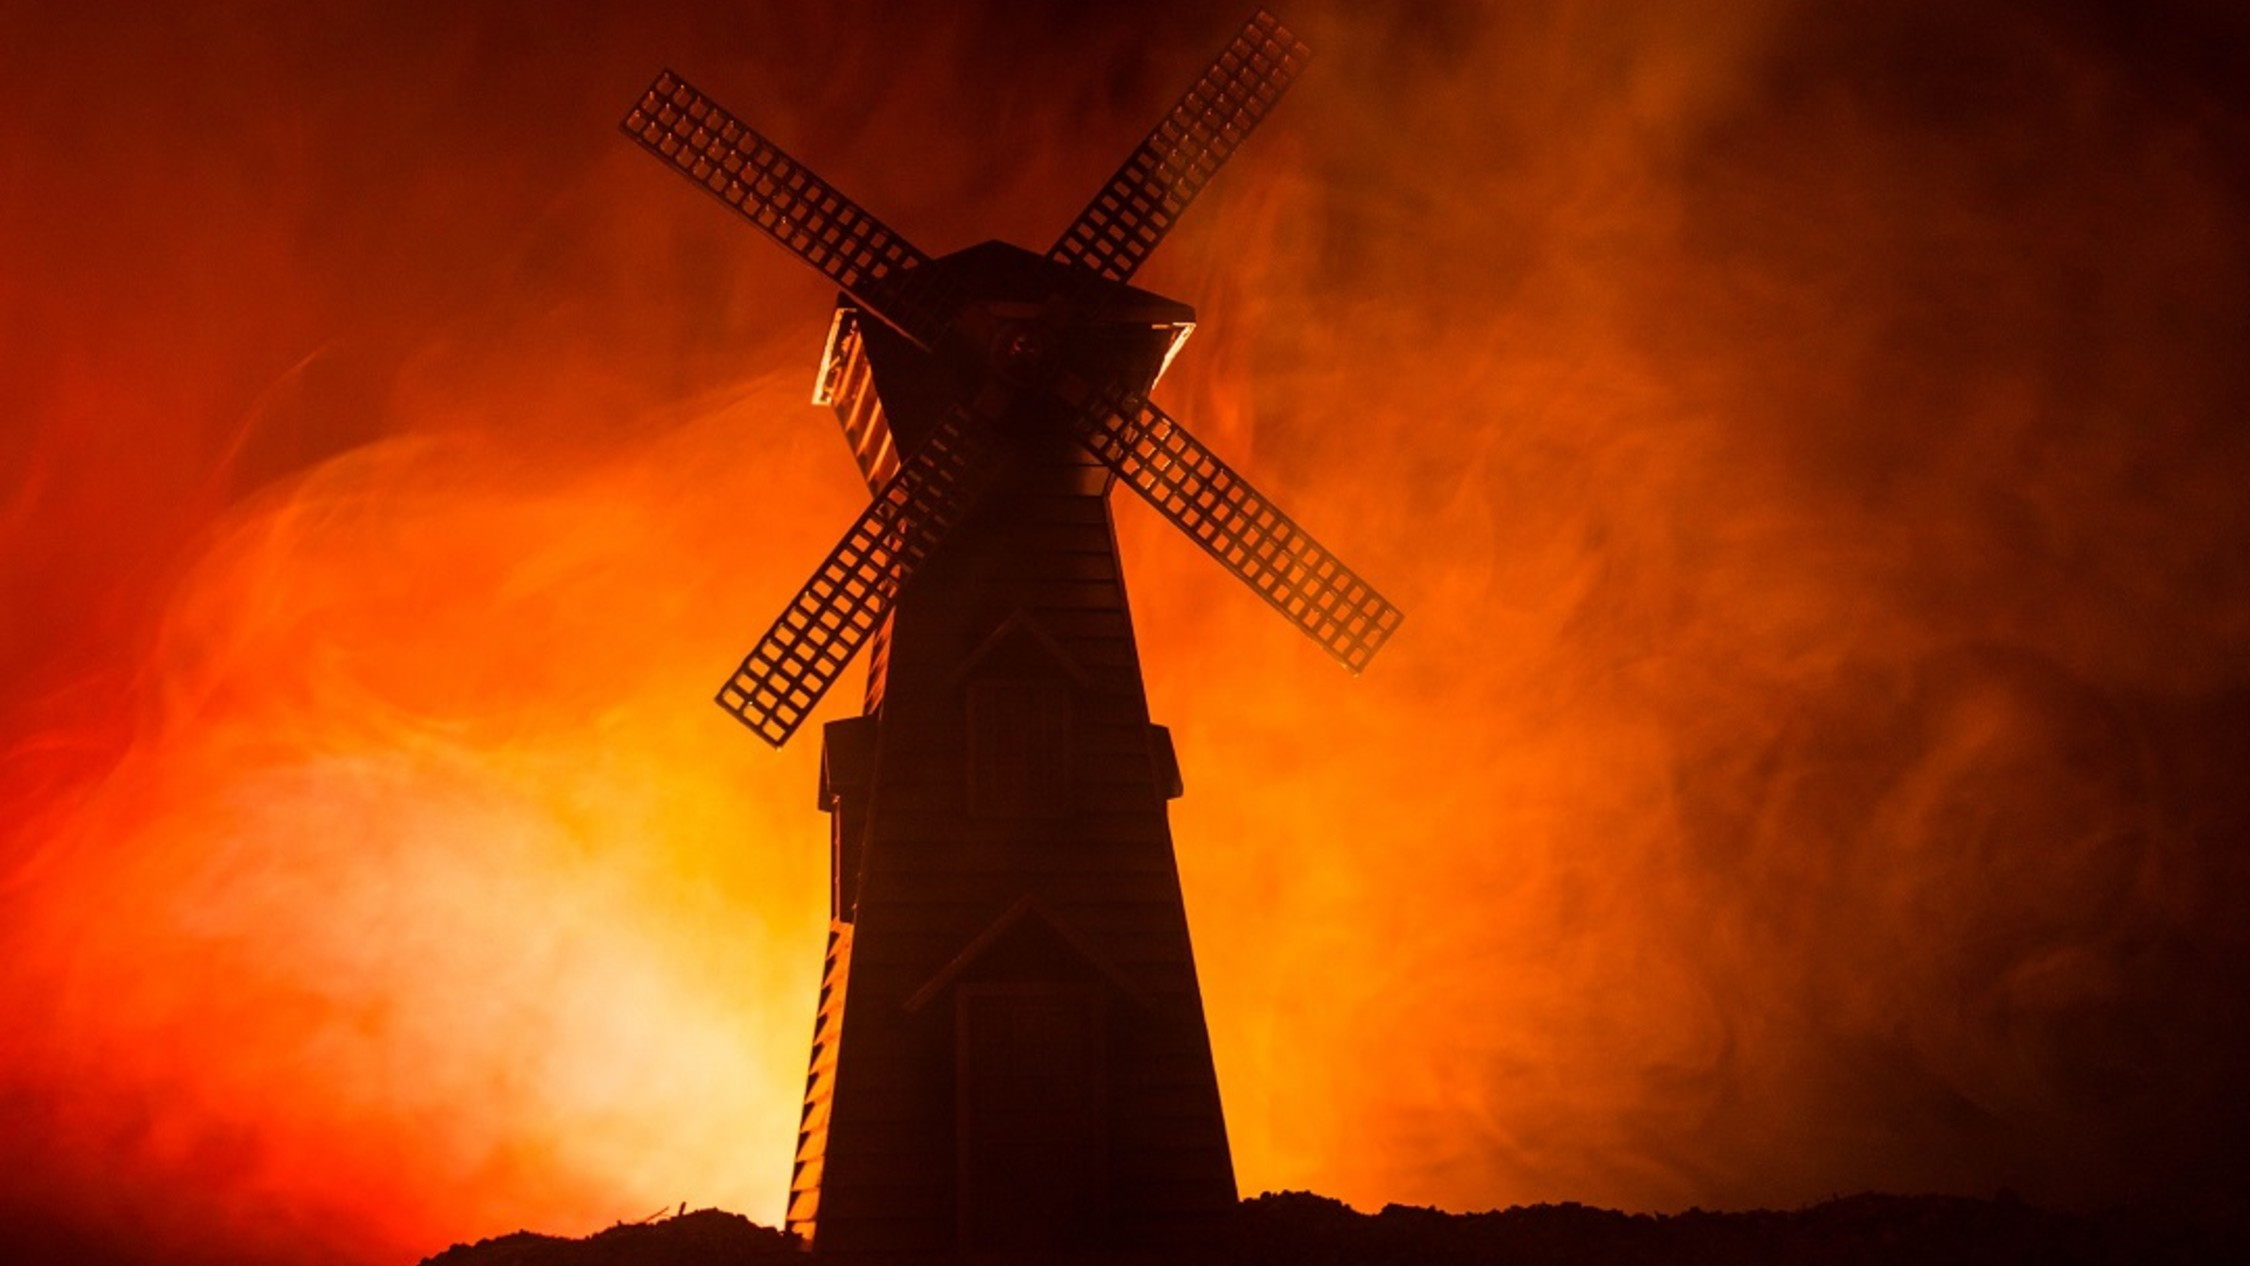 A windmill silhouetted by haze lit by fire